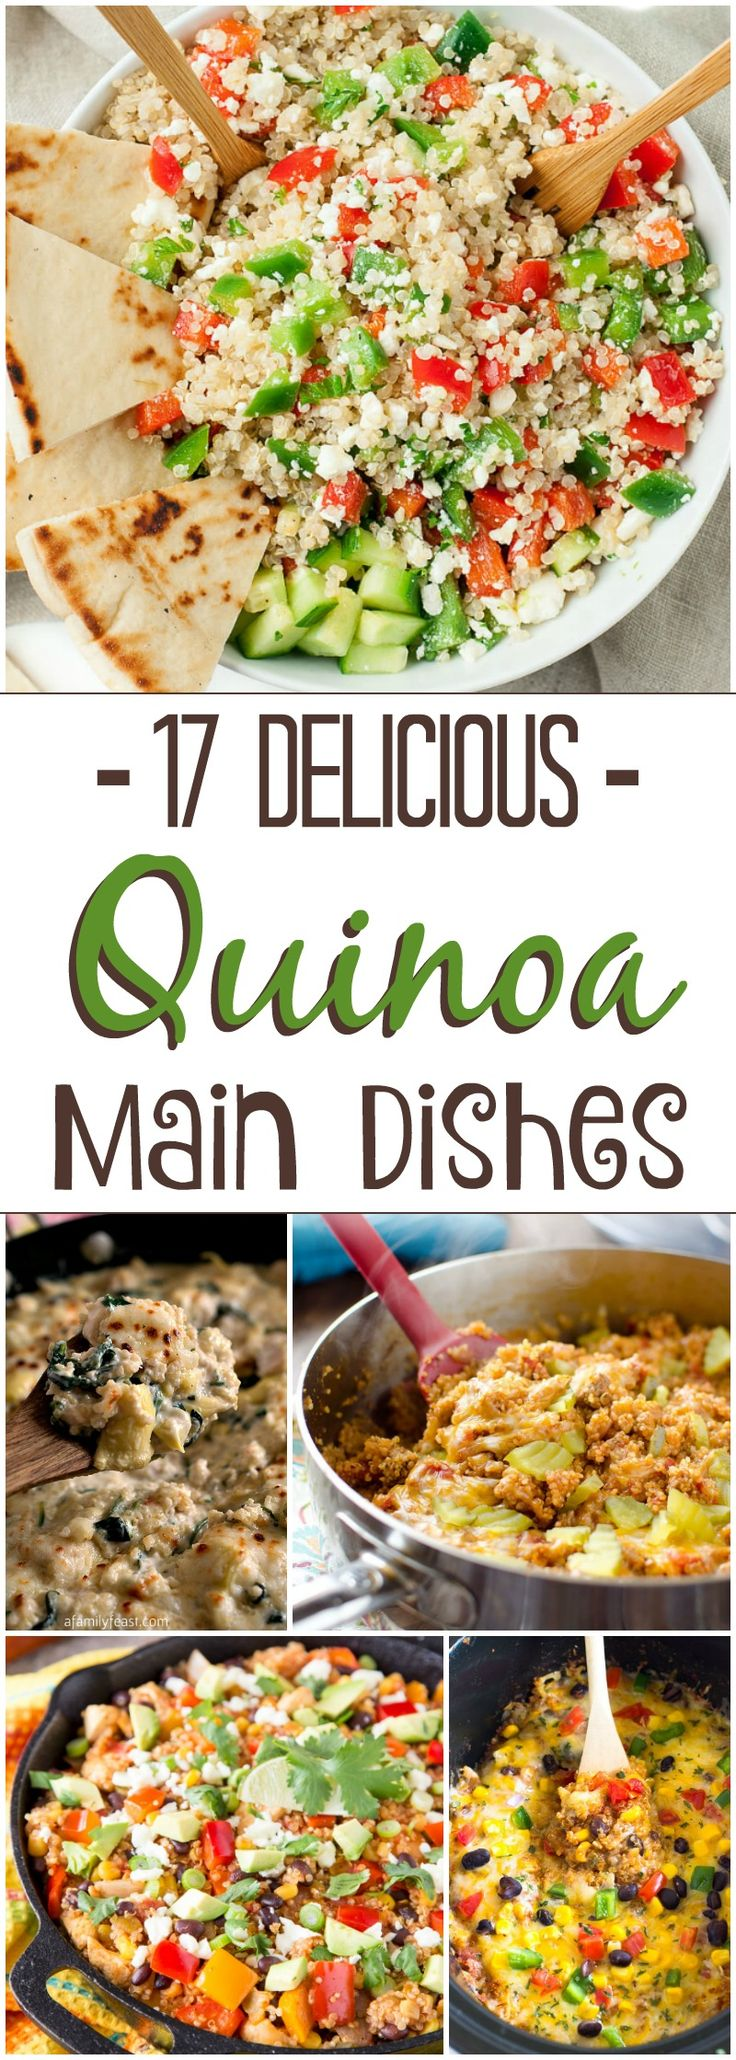 17 DELICIOUS Quinoa Main Dishes